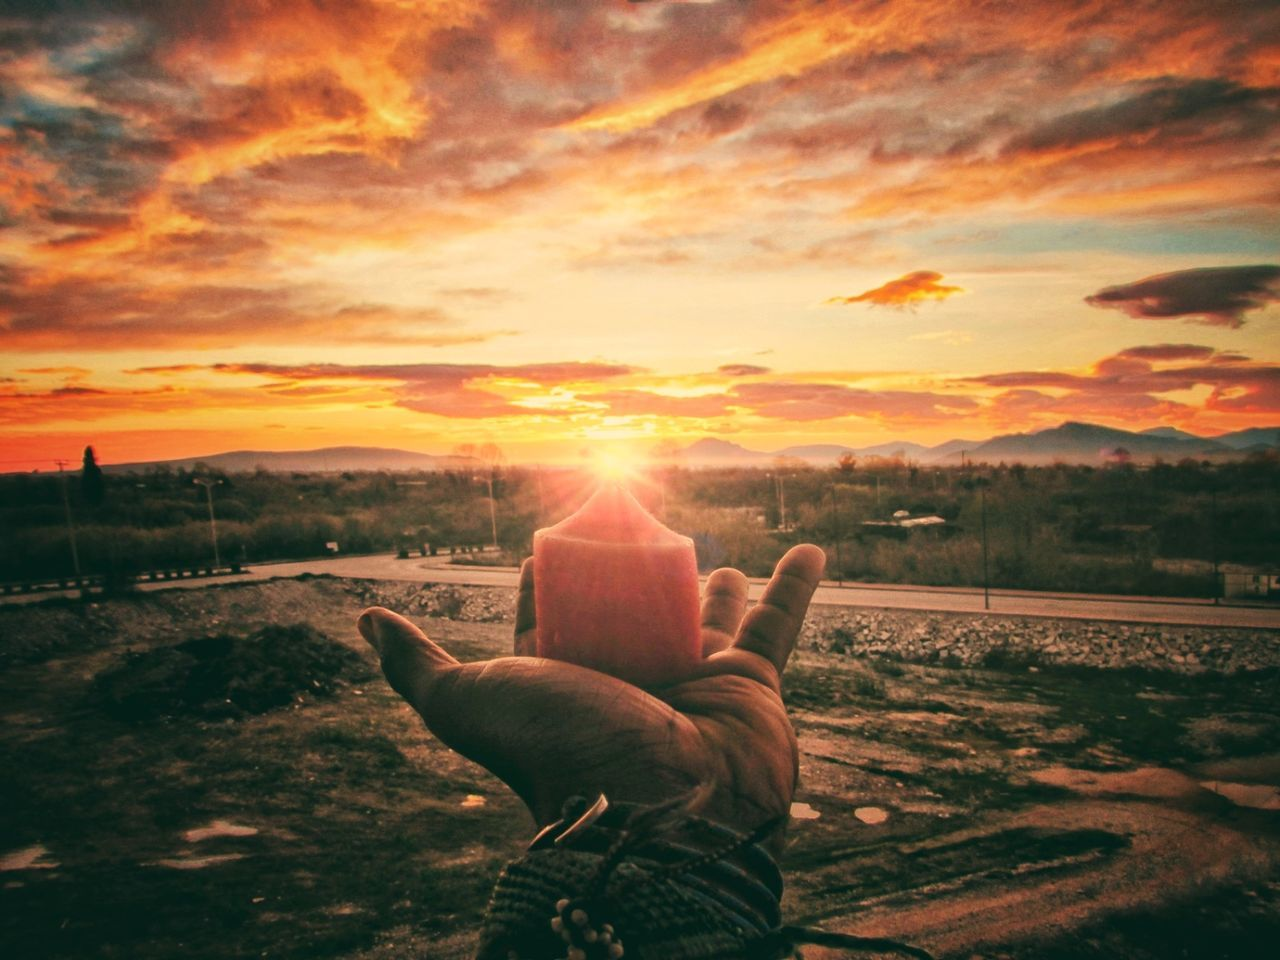 Sunset Sky Beauty In Nature Sun One Person Nature Outdoors Cloud - Sky People Day Adult Beauty In Nature Nature Standing Leisure Activity Vacations Sunlight Real People Astronomy Tranquility Vintage Photo EyeEm Diversity